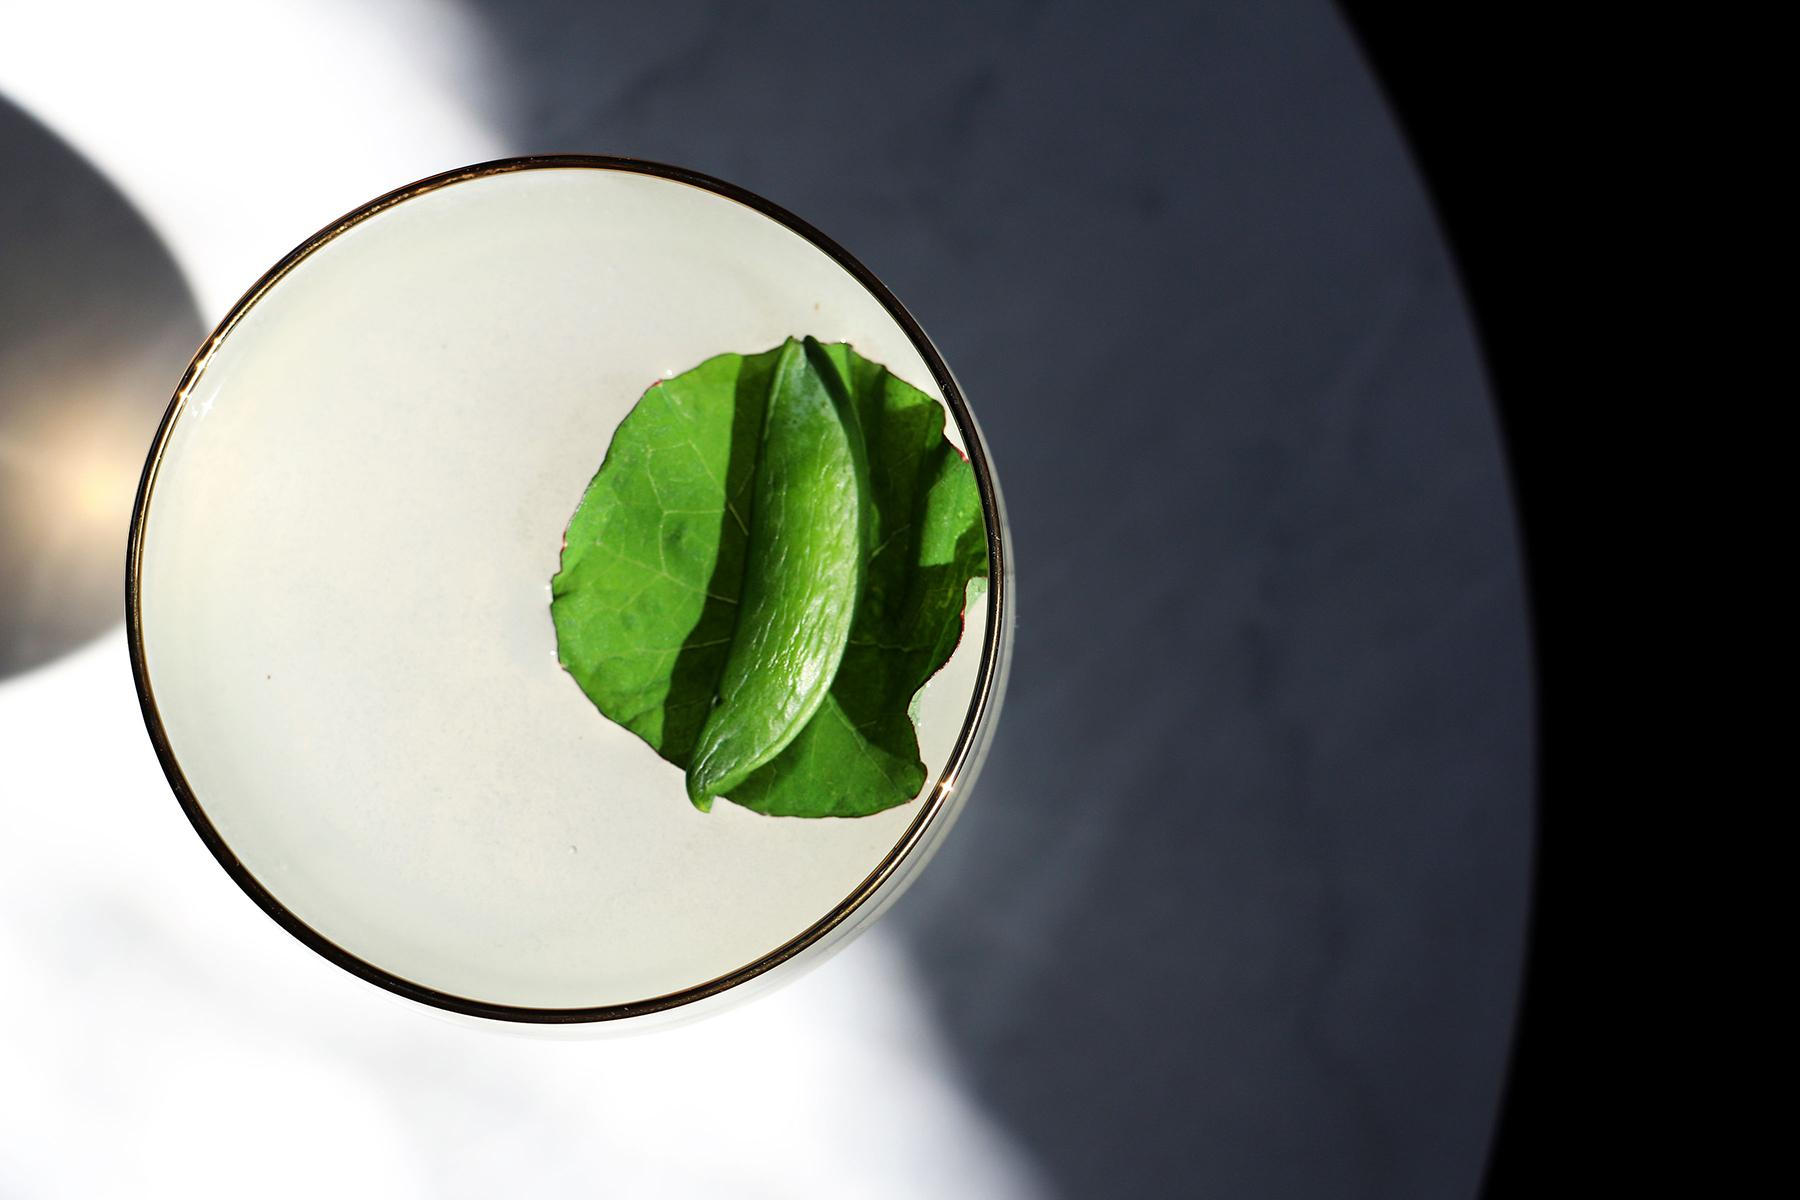 "The Goddess Strikes: Shakes vodka with Lillet Blanc, snap peas, Persian lime and sugarcane. ""Again the goddess strikes the golden lyre, and tunes to wilder notes the warbling wire, with soft suspended step attention moves, and silence hovers o'er the listening groves."" (Image: Jai Williams)"